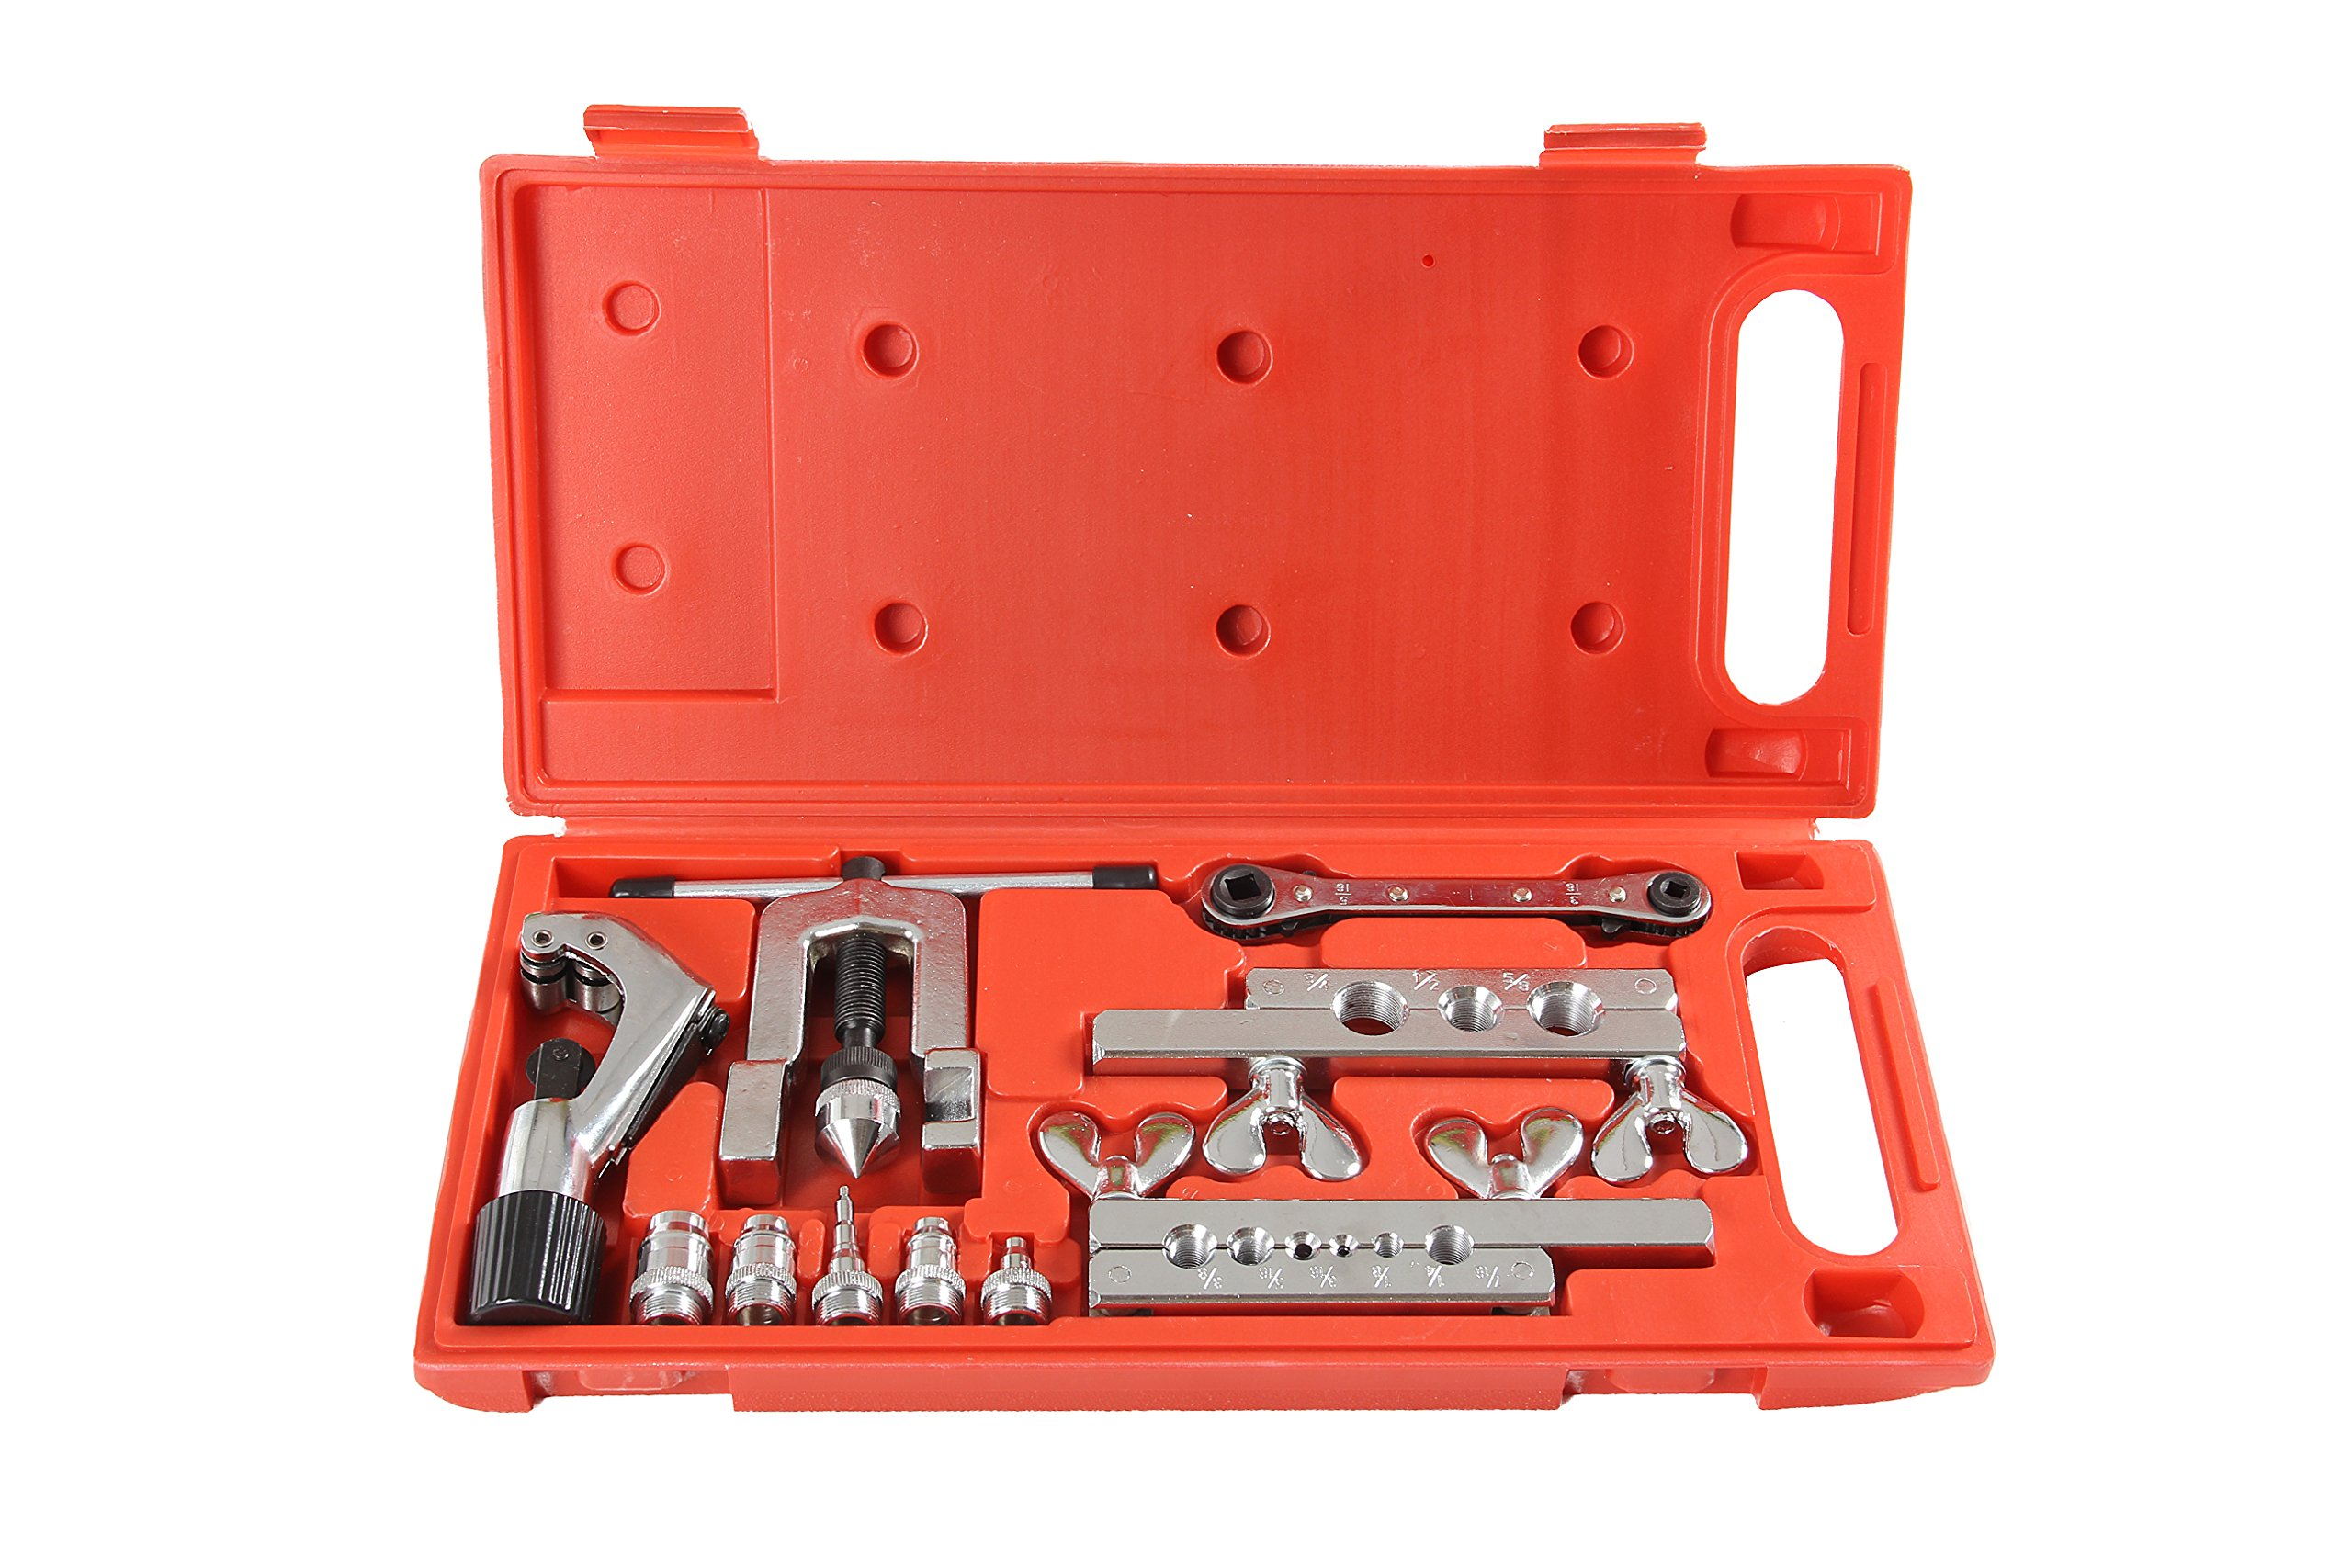 Shankly Flaring Tool Set (10 Piece - Professional Grade), Heavy Duty Steel Flaring Tools Kit and Swage Tool, Flaring Tool with Tubing Cutter Included. (This is not a Double Flaring Tool).